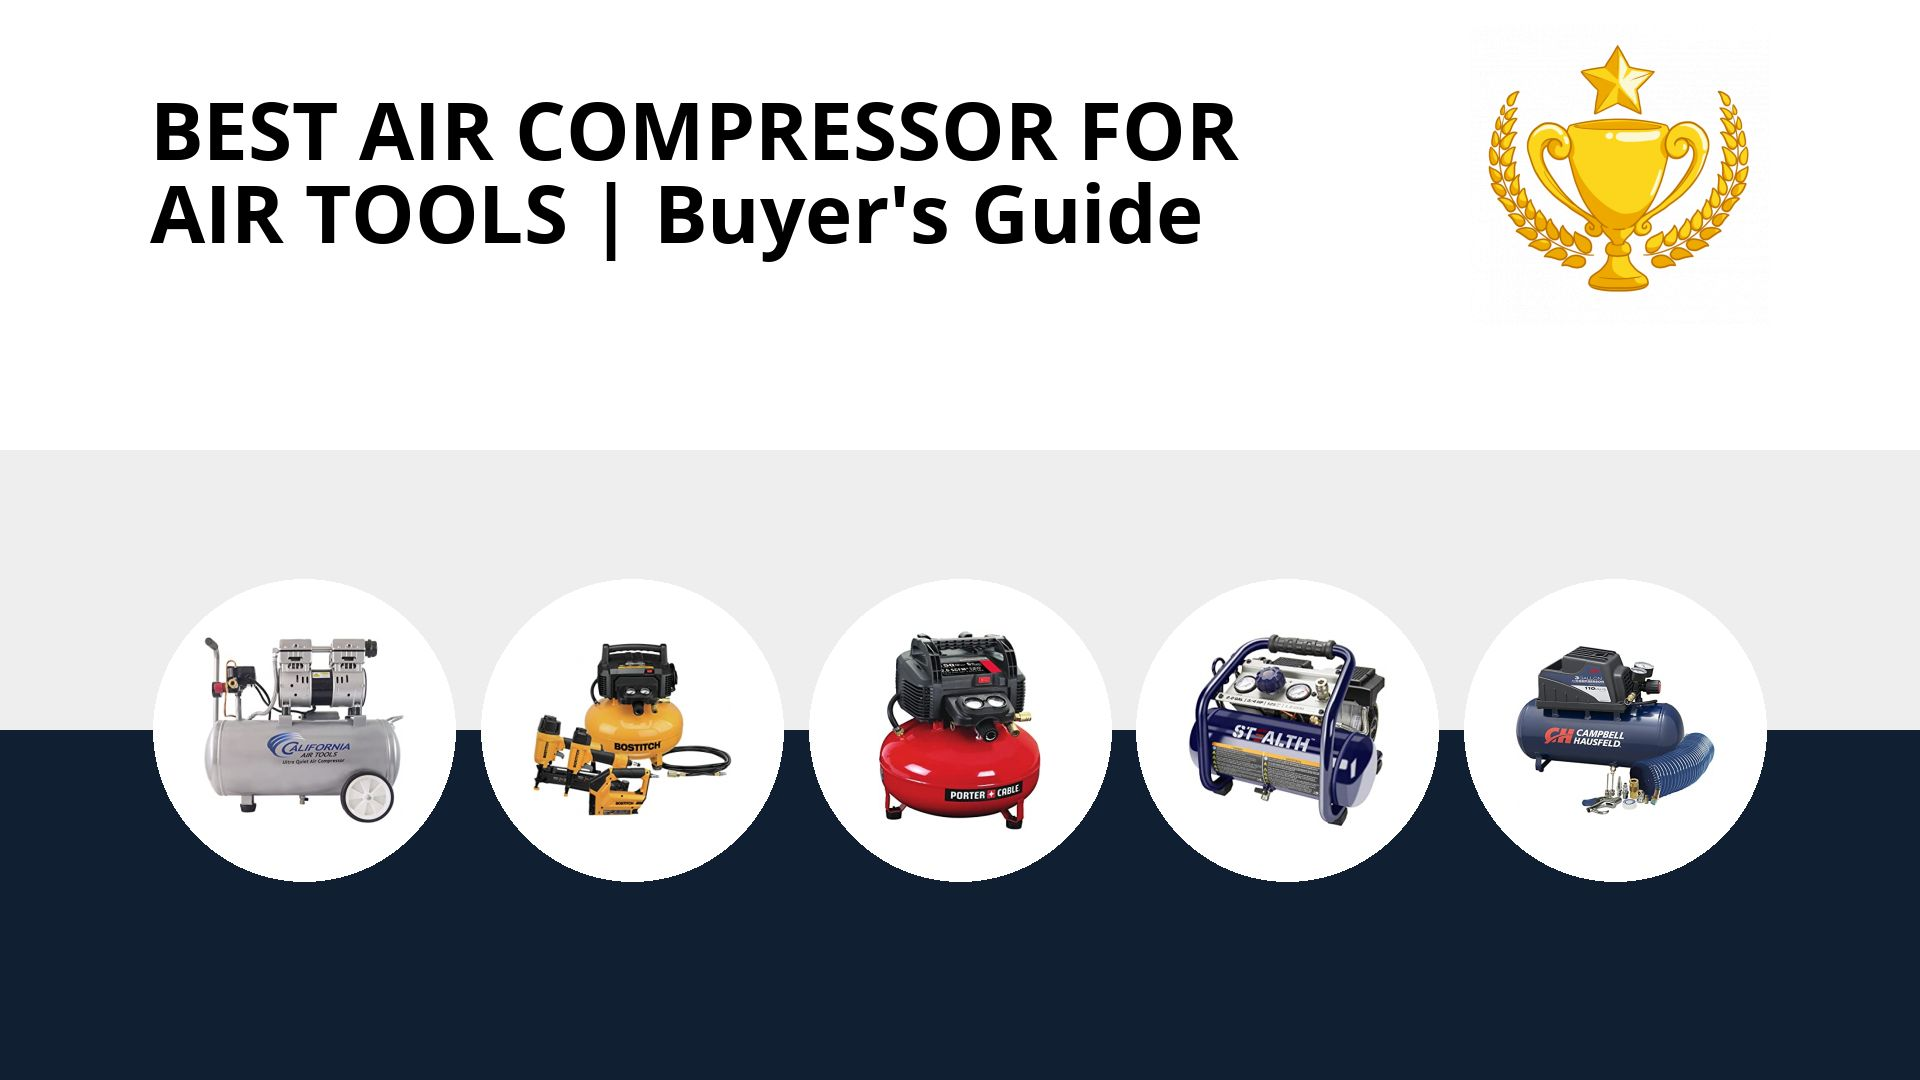 Best Air Compressor For Air Tools: image